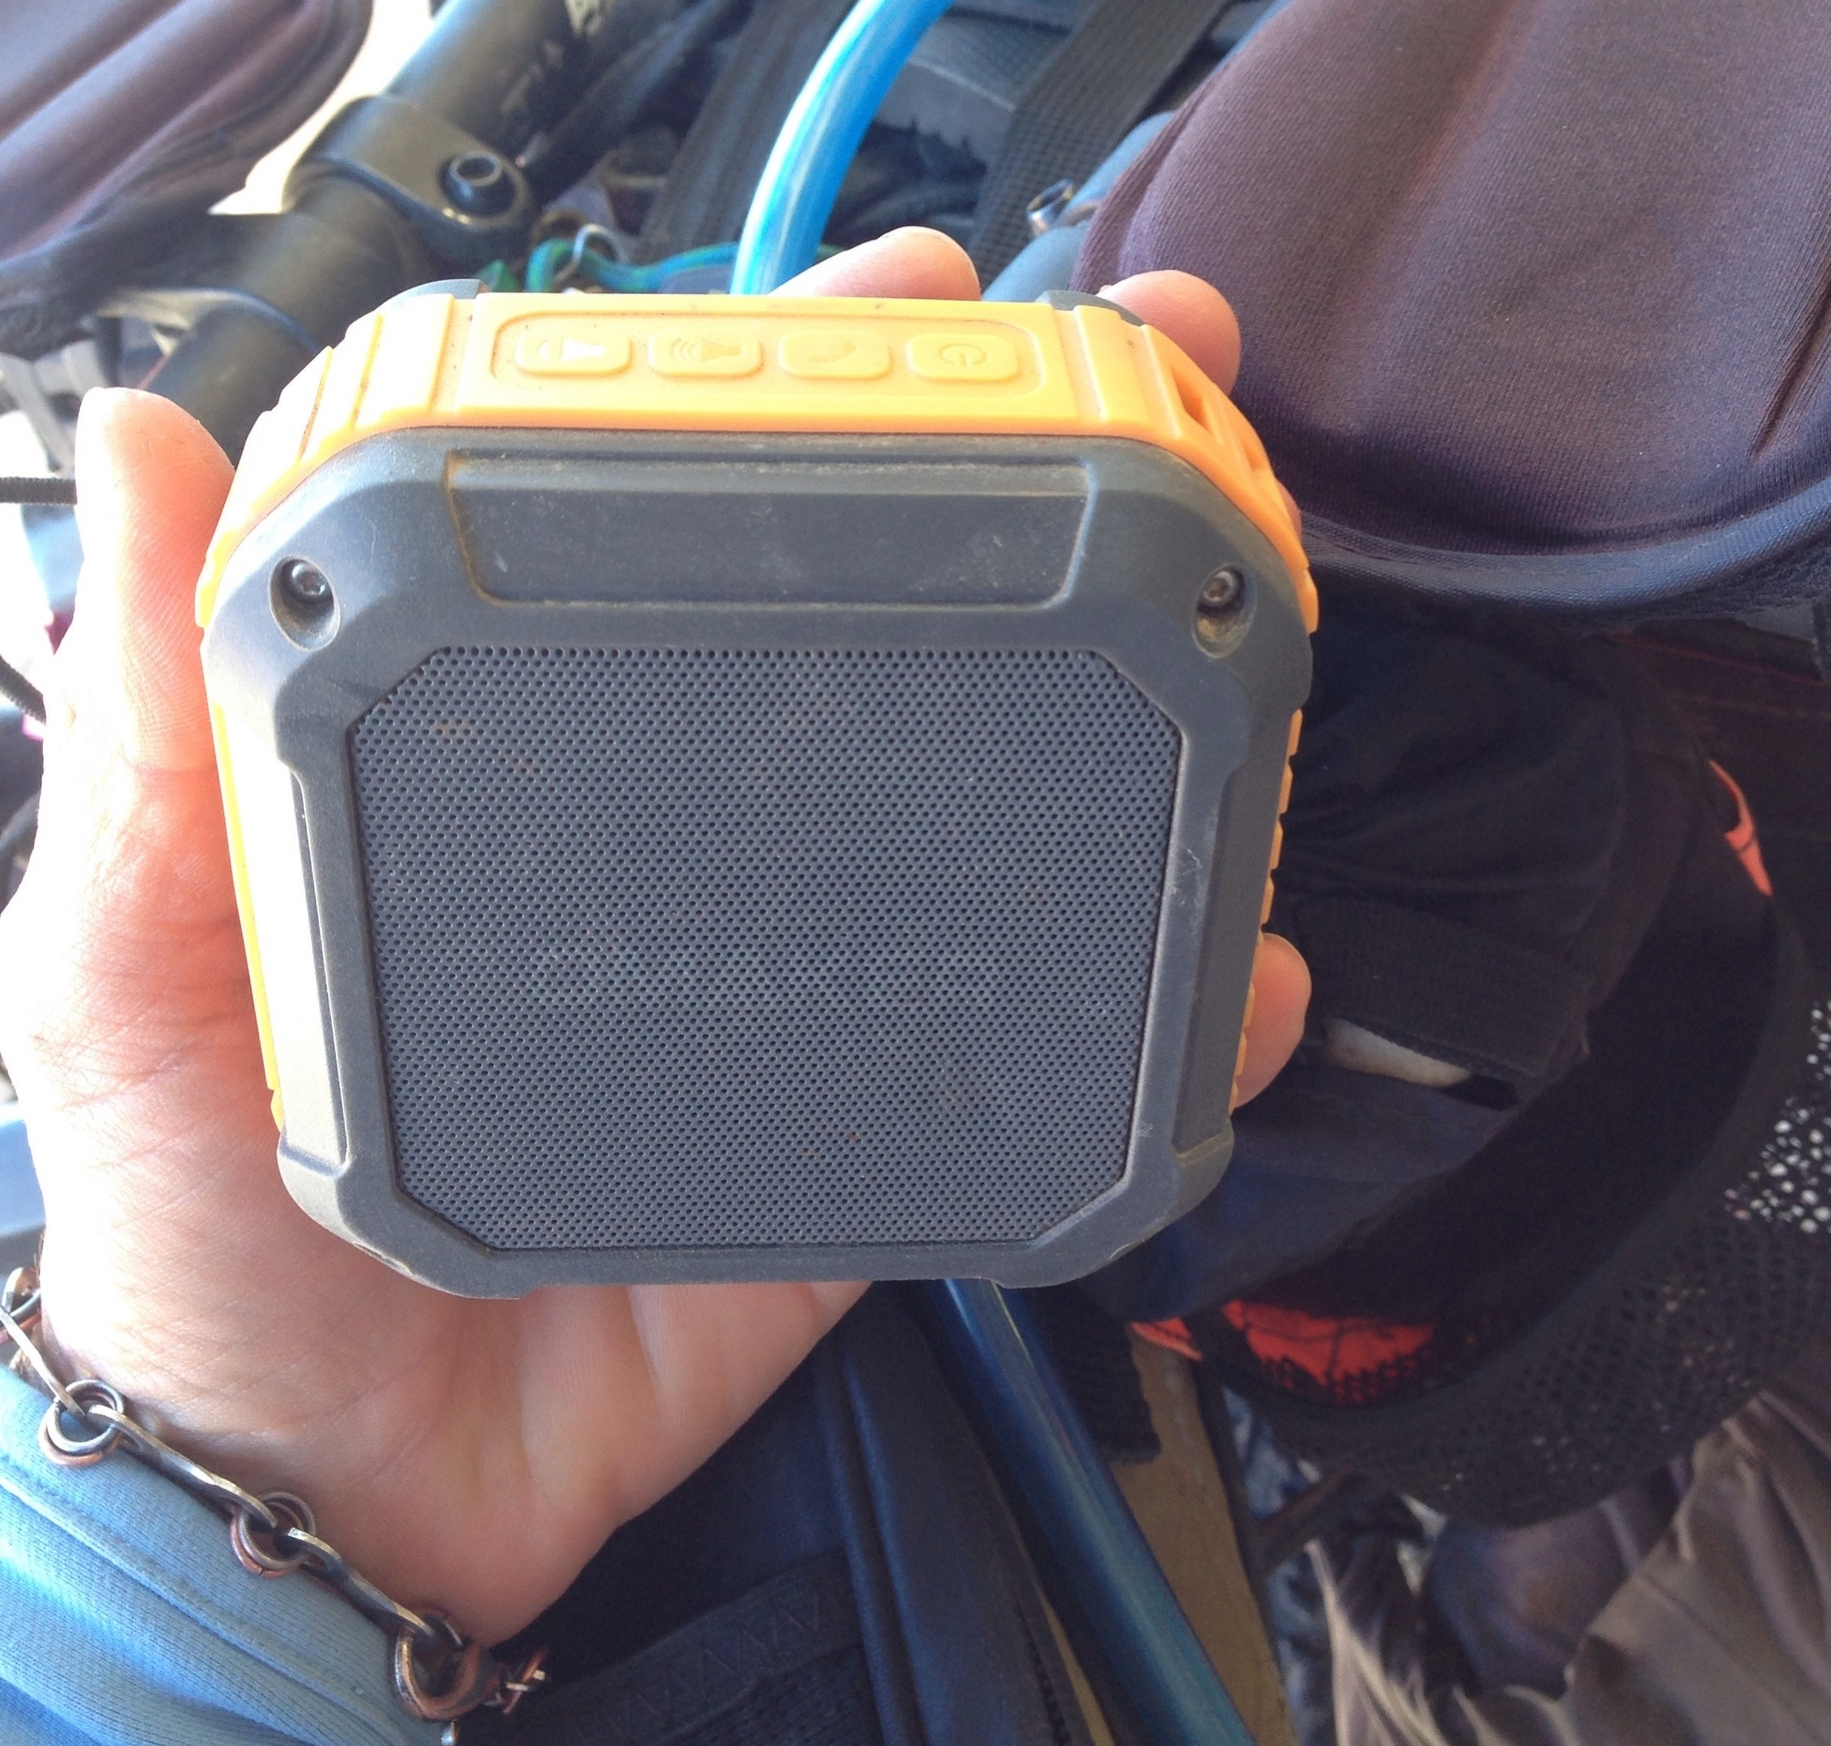 One of the super important things I keep charged with just the generator hub; no backup battery needed.